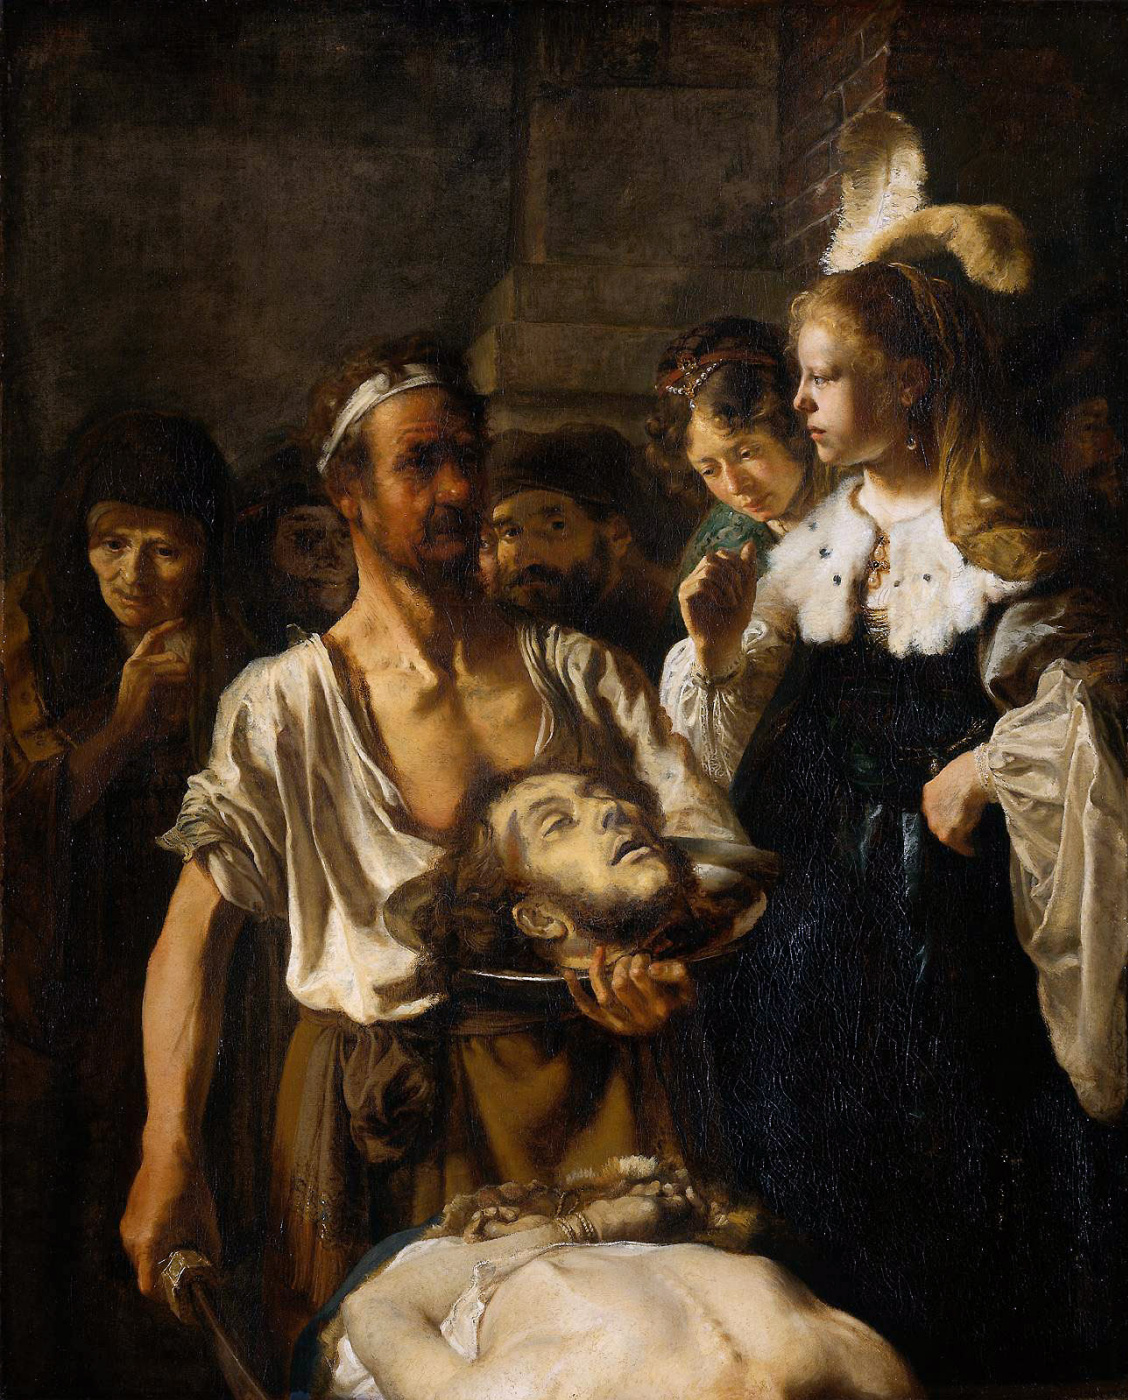 Karel Fabricius. The beheading of St. John the Baptist (workshop of Rembrandt van Rijn, the authorship is not confirmed)